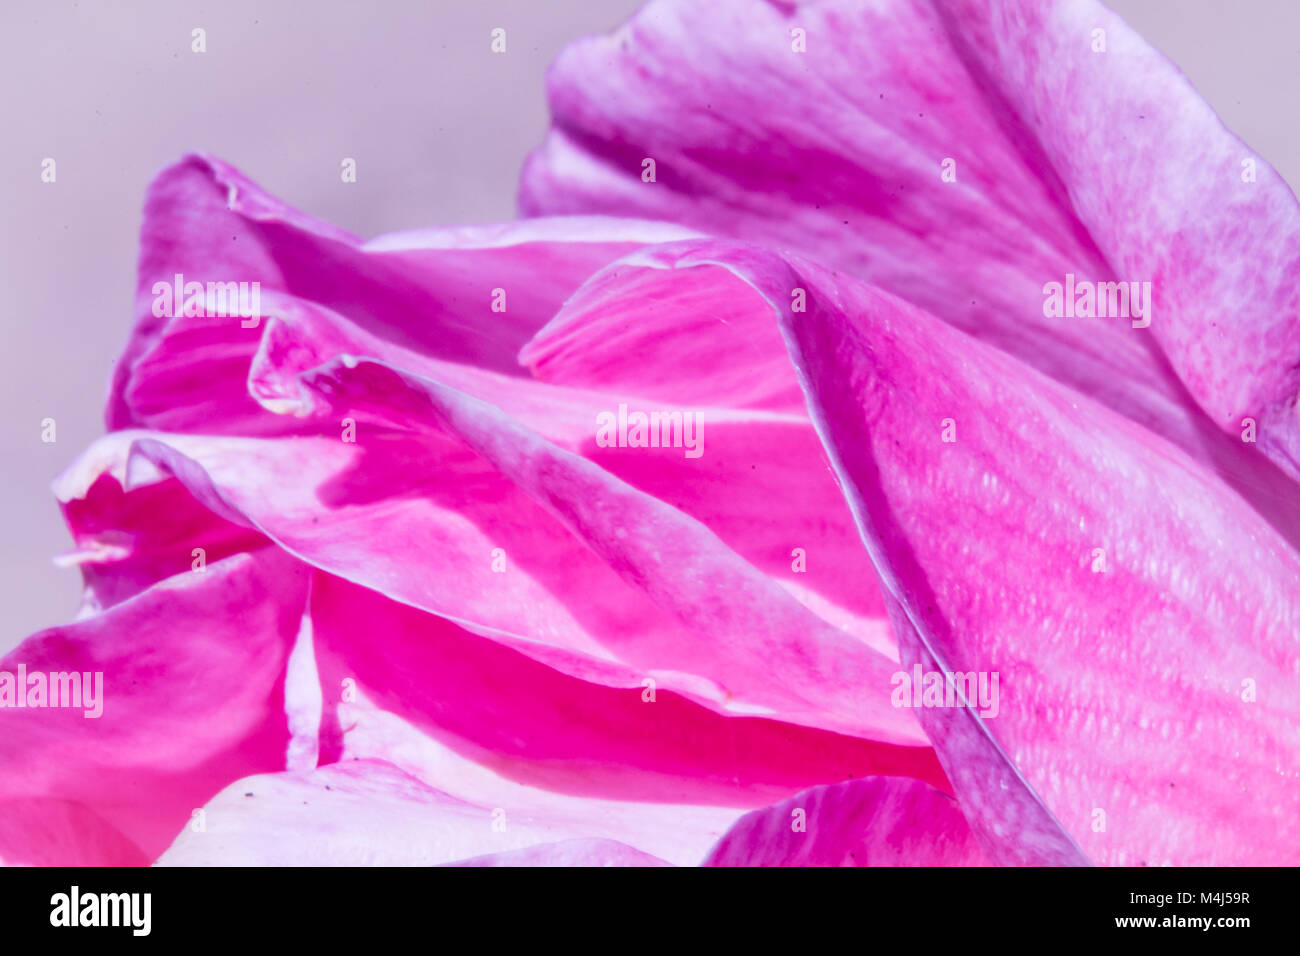 lines and waves of the petals of a rose at dawn - Stock Image